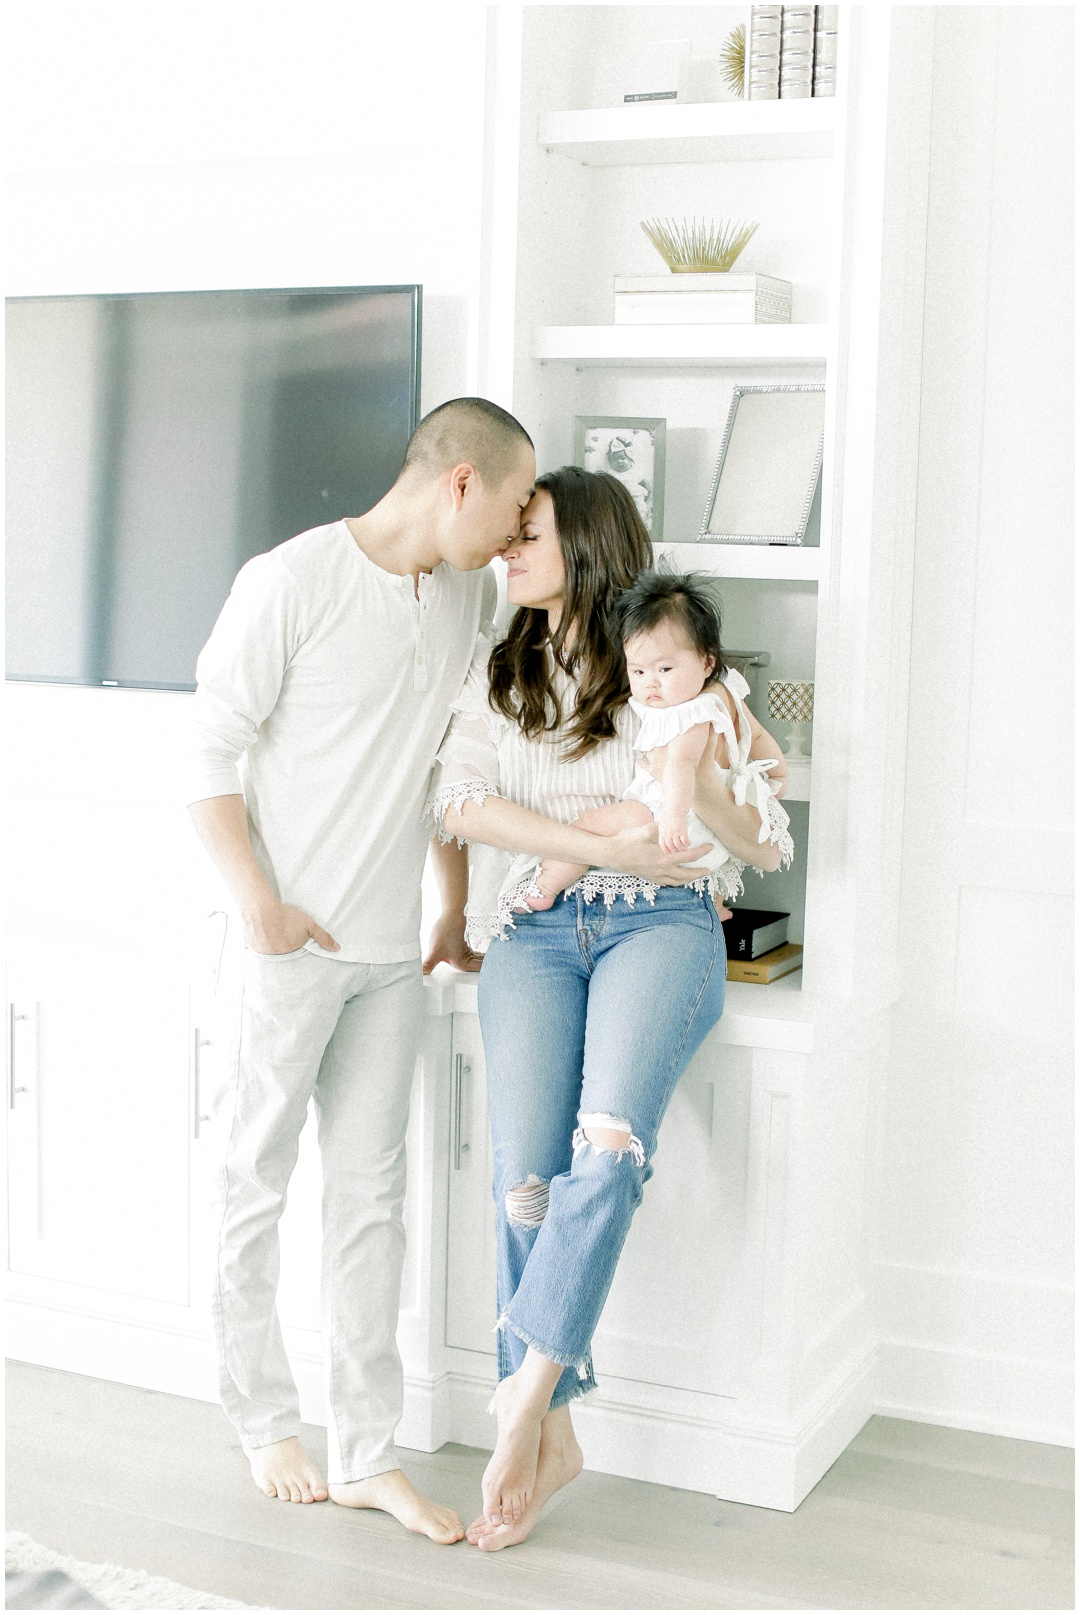 Newport_Beach_Family_Light_airy_Natural_Photographer_Newport_Beach_In-Home_Photographer_Orange_County_Family_Photographer_Cori_Kleckner_Photography_Huntington_Beach_Photographer_Family_OC_Newborn_Cassidee_Ma_Peter_Ma_Family__3148.jpg